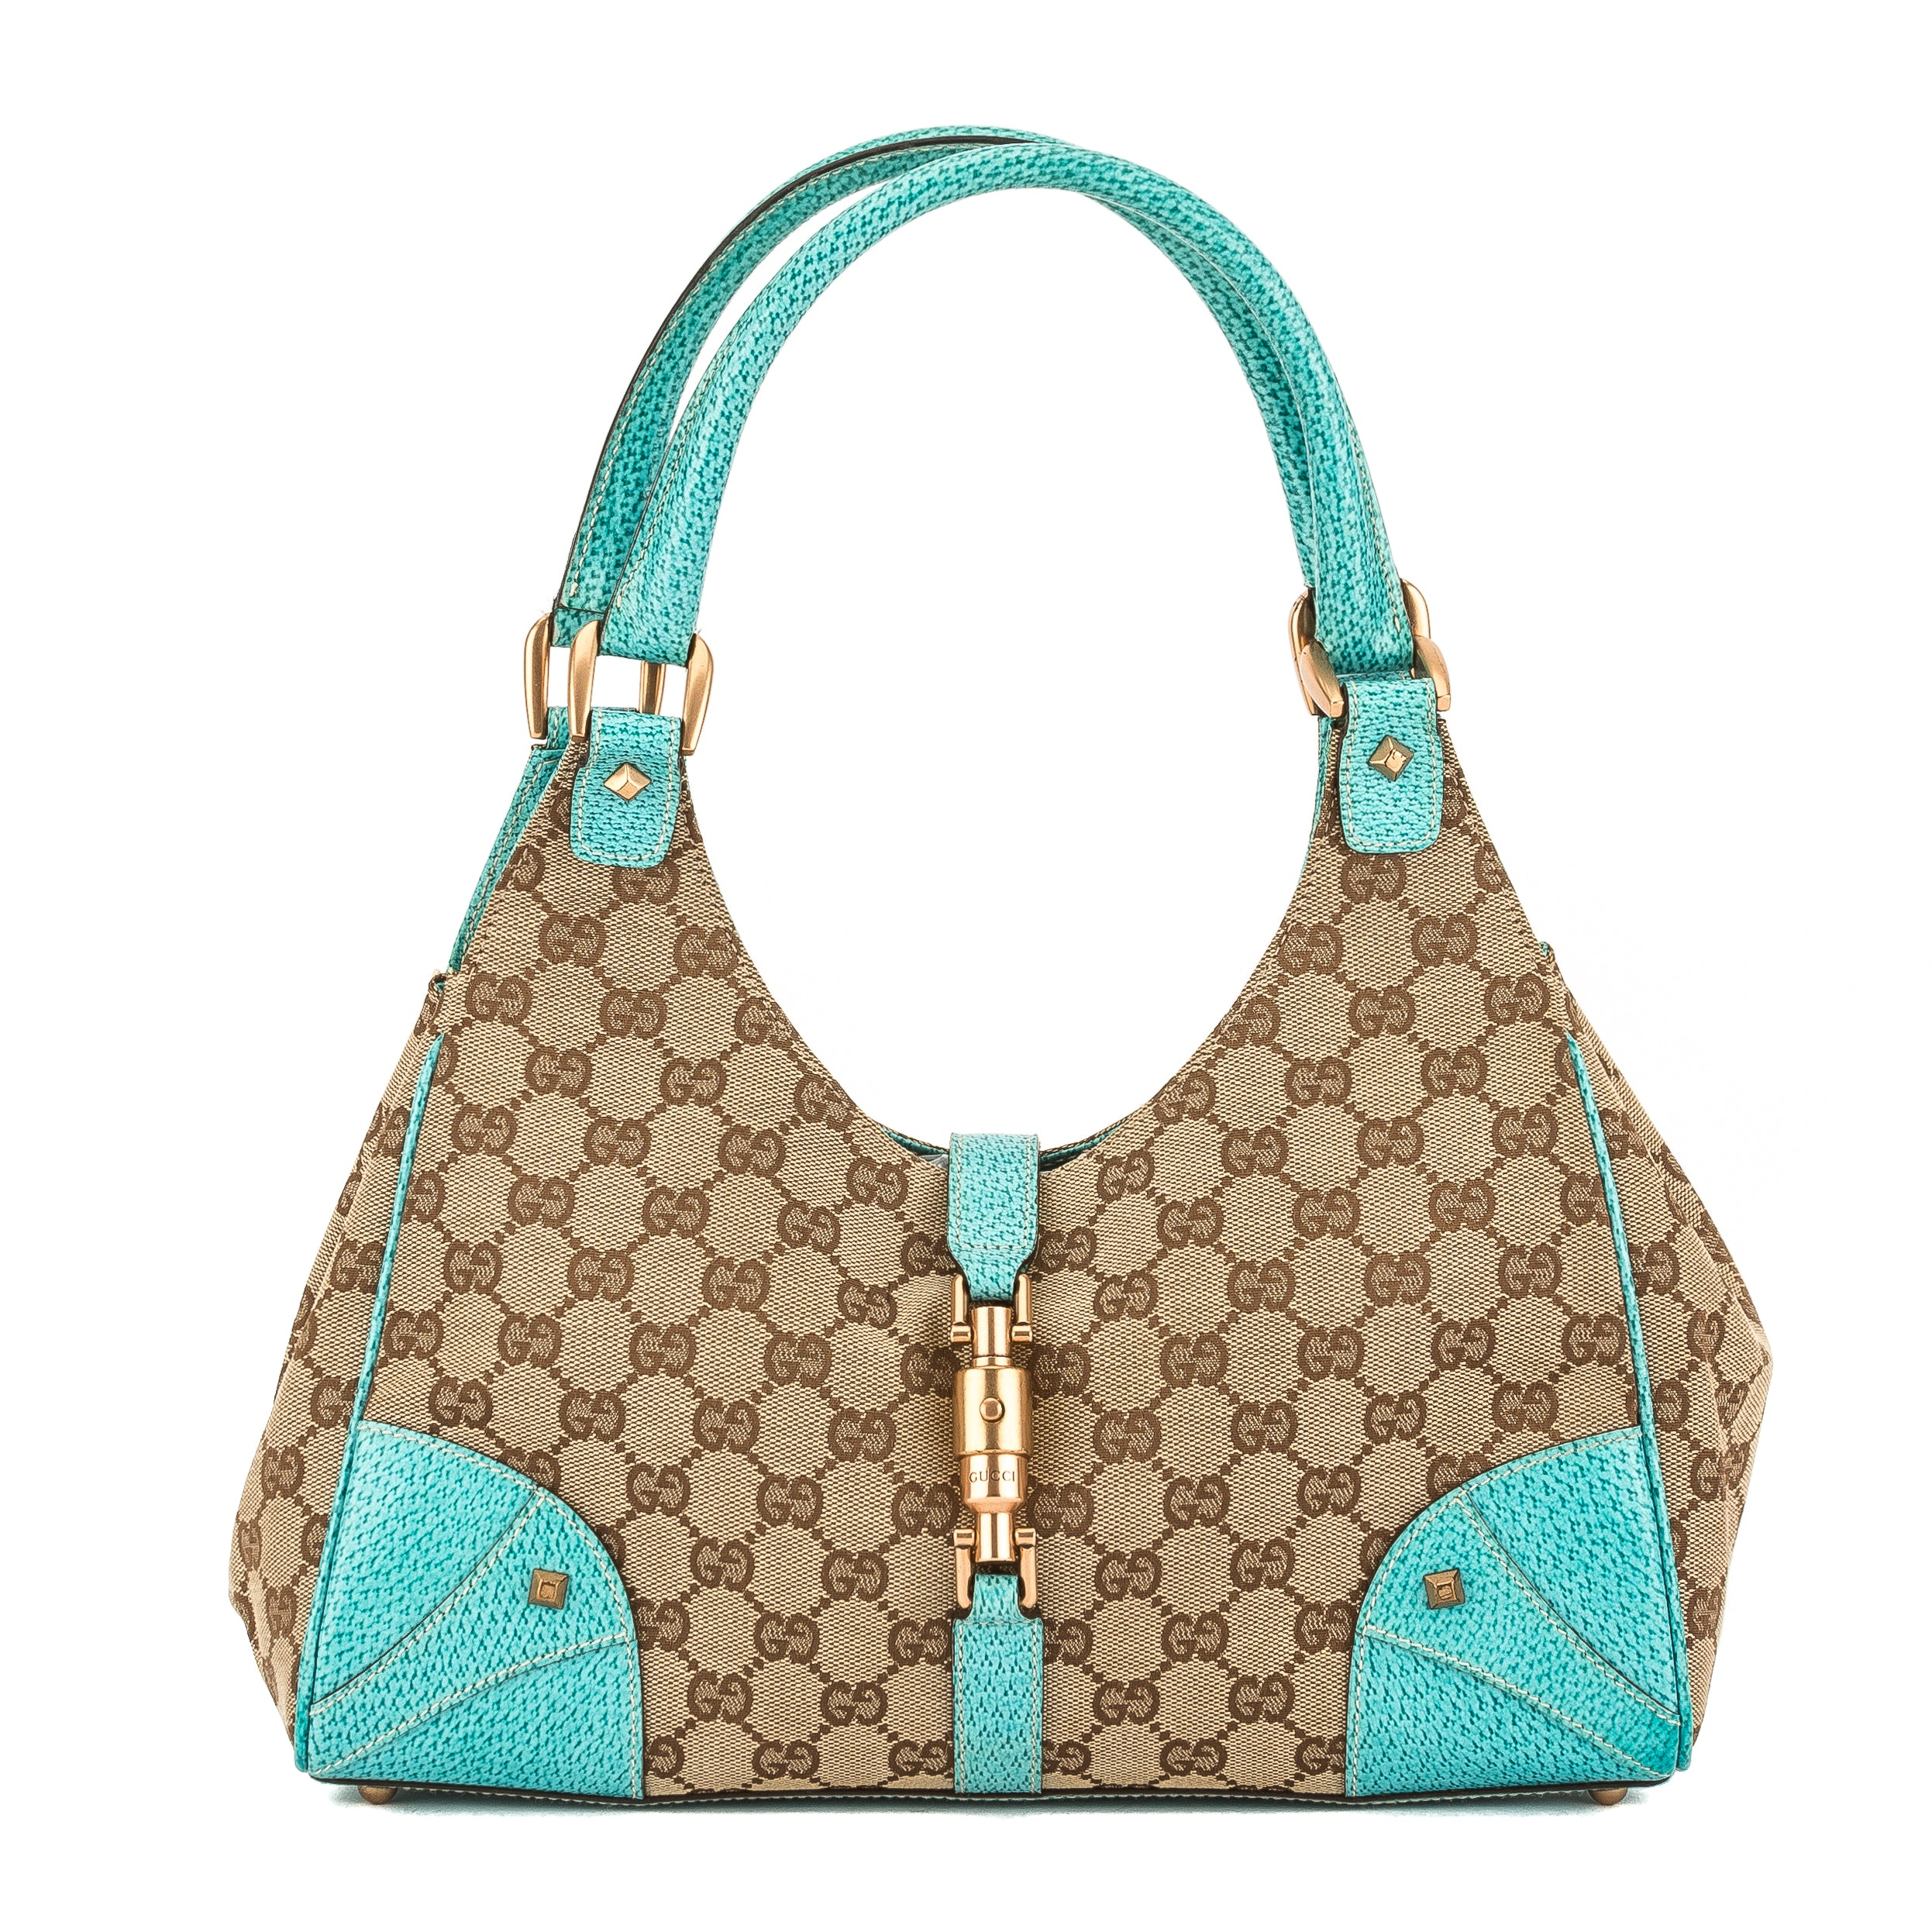 91e58fa758f391 Gucci Turquoise Leather GG Monogram Canvas Jackie Bag (Pre Owned ...